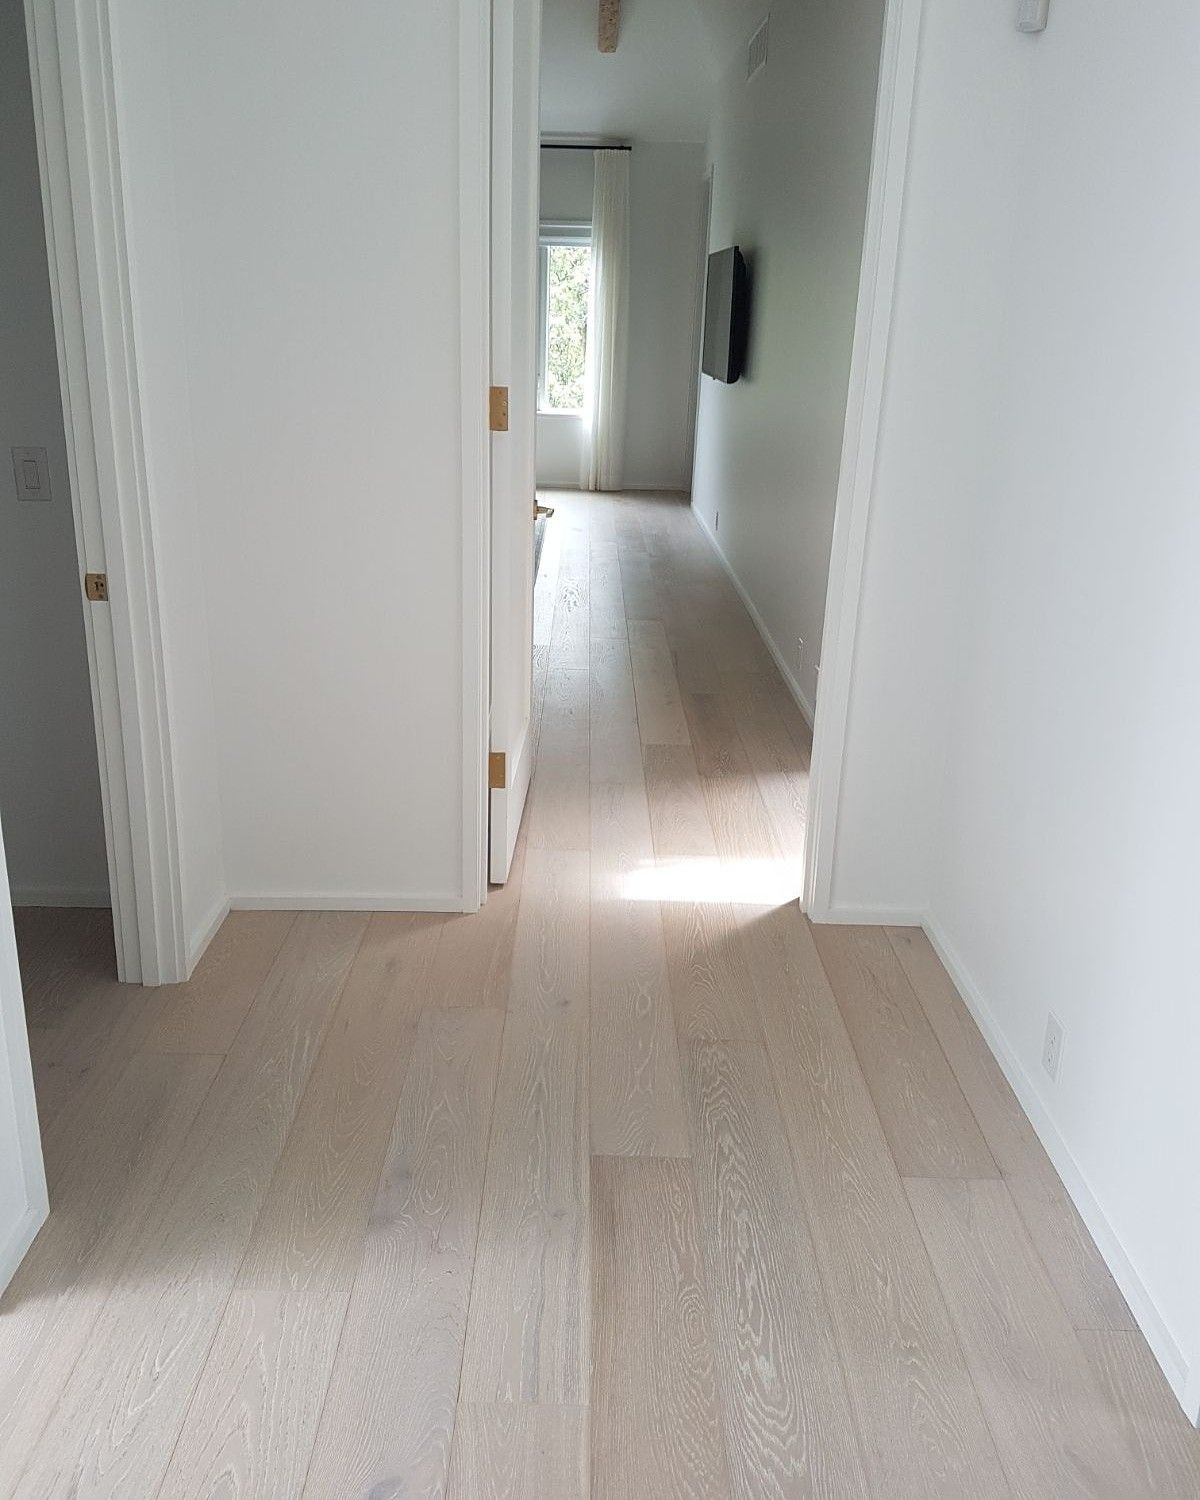 the hardwood flooring stores markham on of parqueteam hardwood flooring hardwoodparquet on pinterest with 52049d48f70996b3d6208ce9df30986f